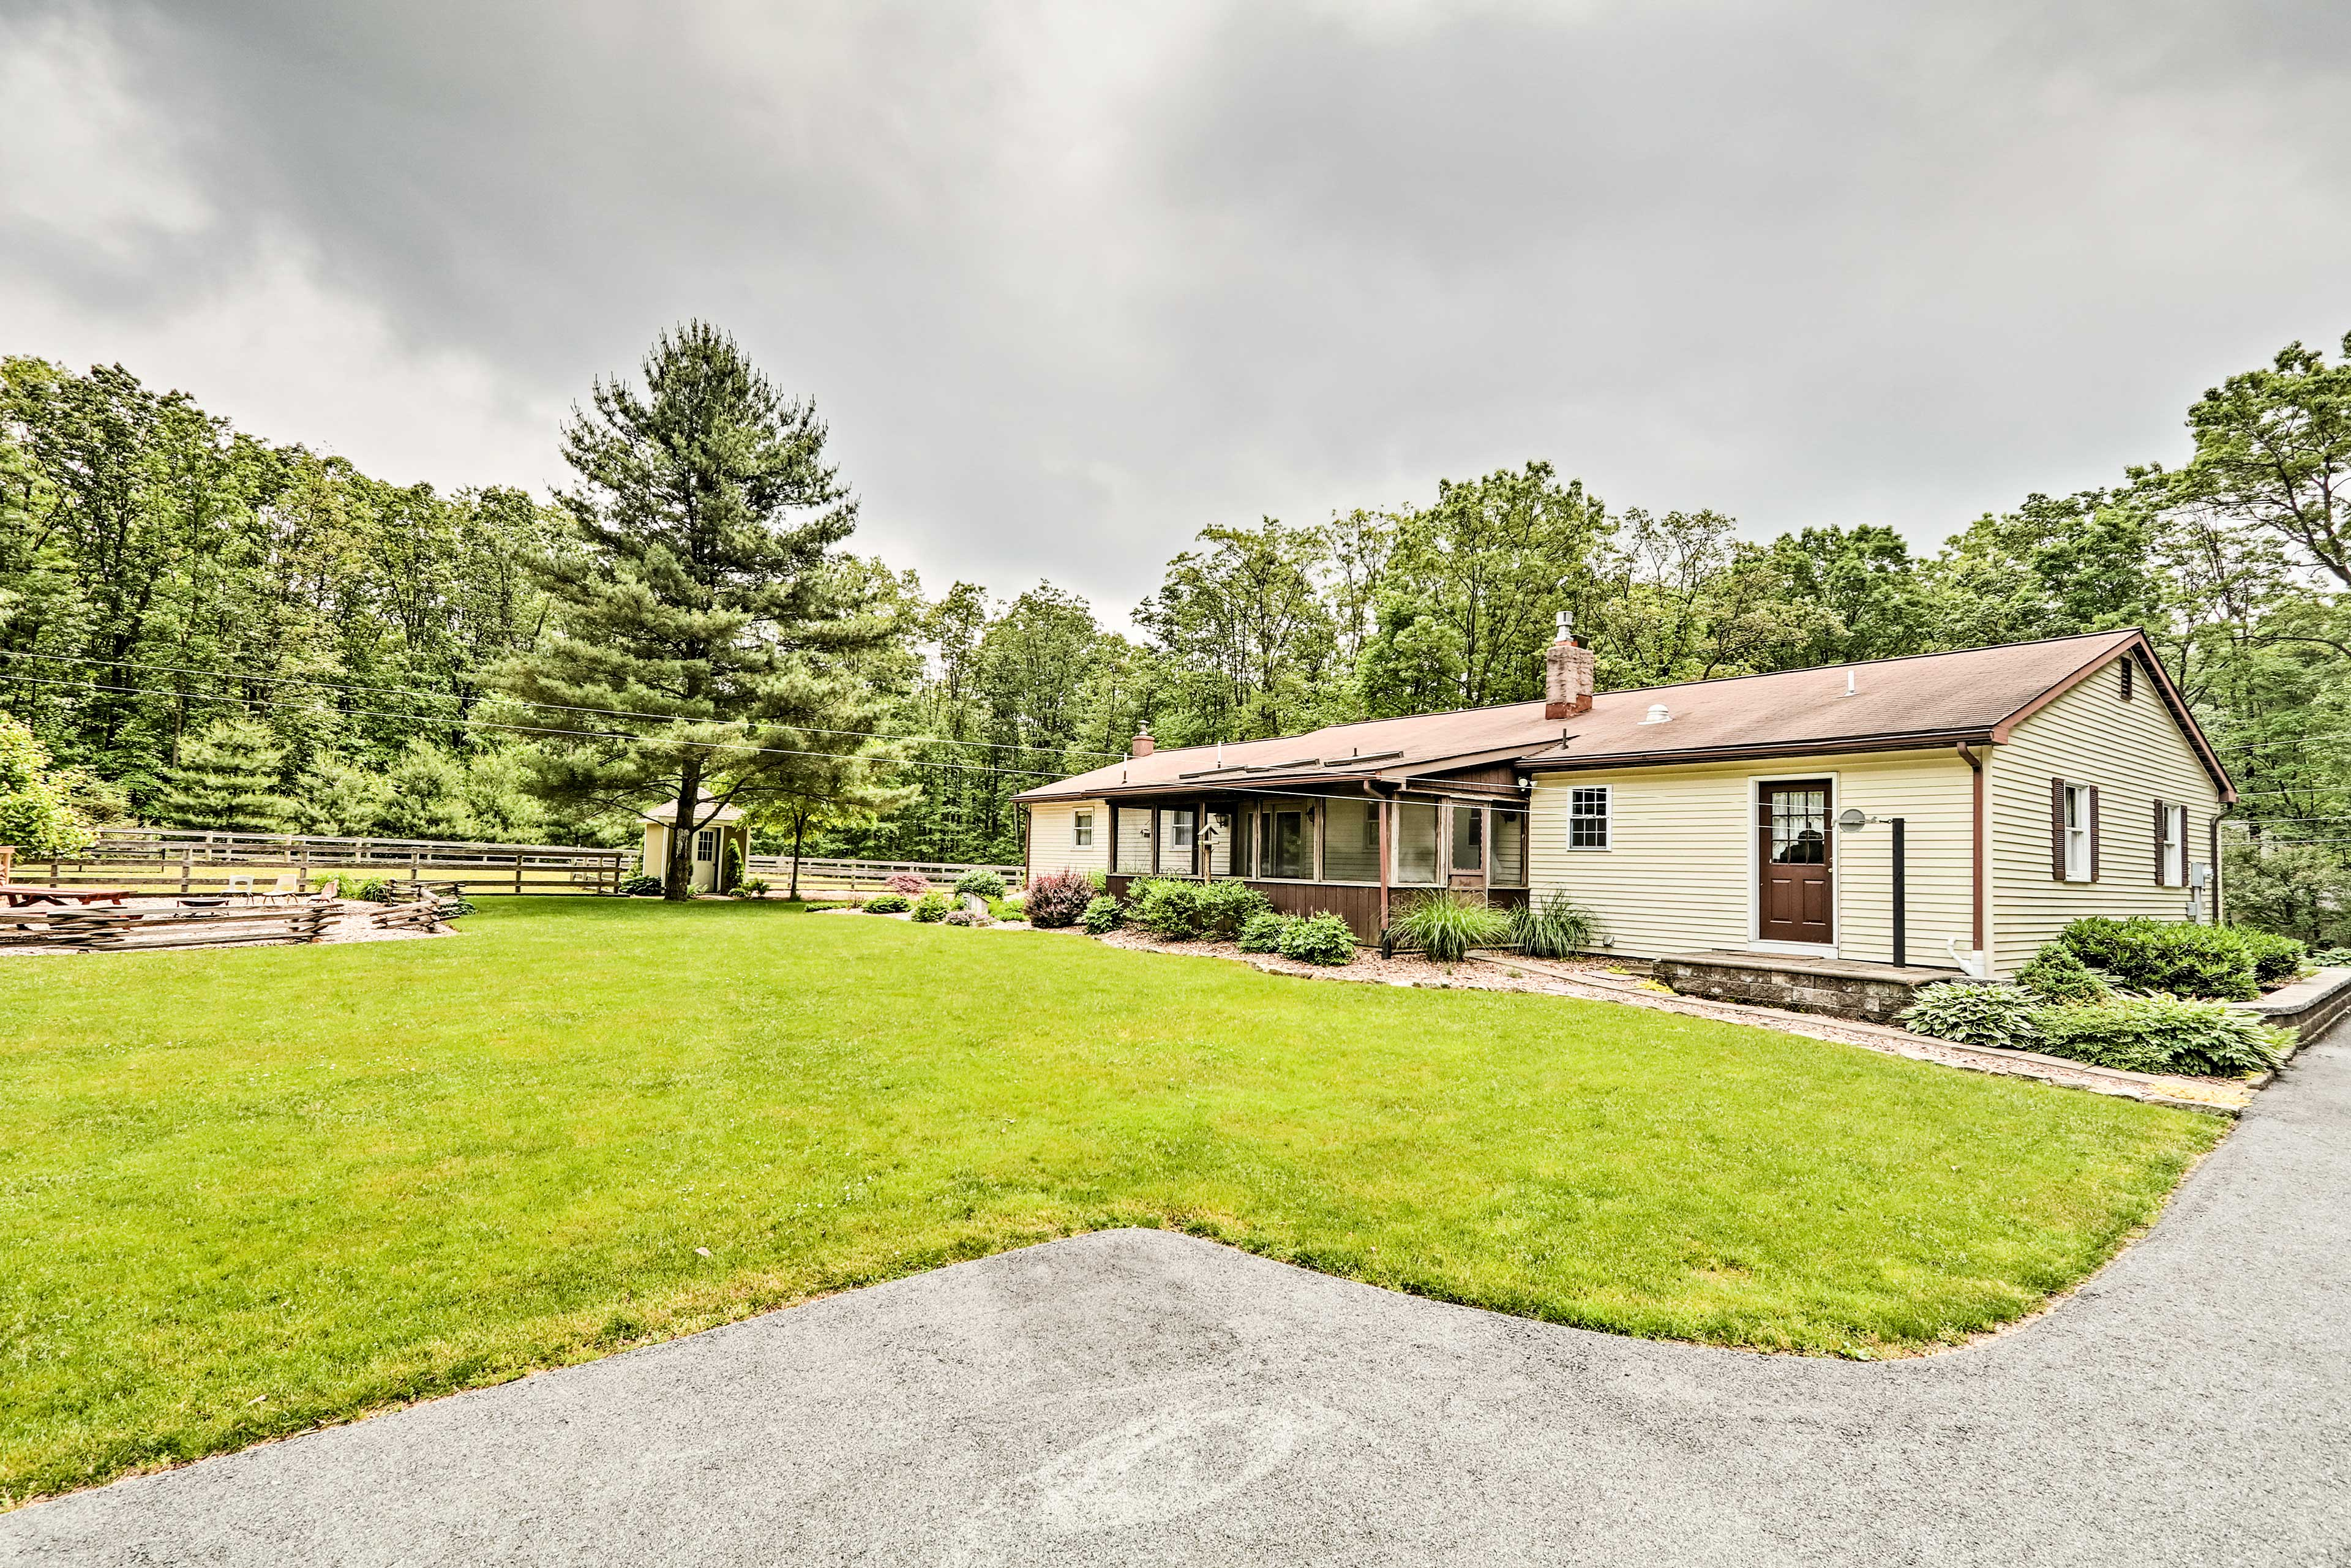 What are you waiting for? Discover Amish Country from the comofrt of this home.